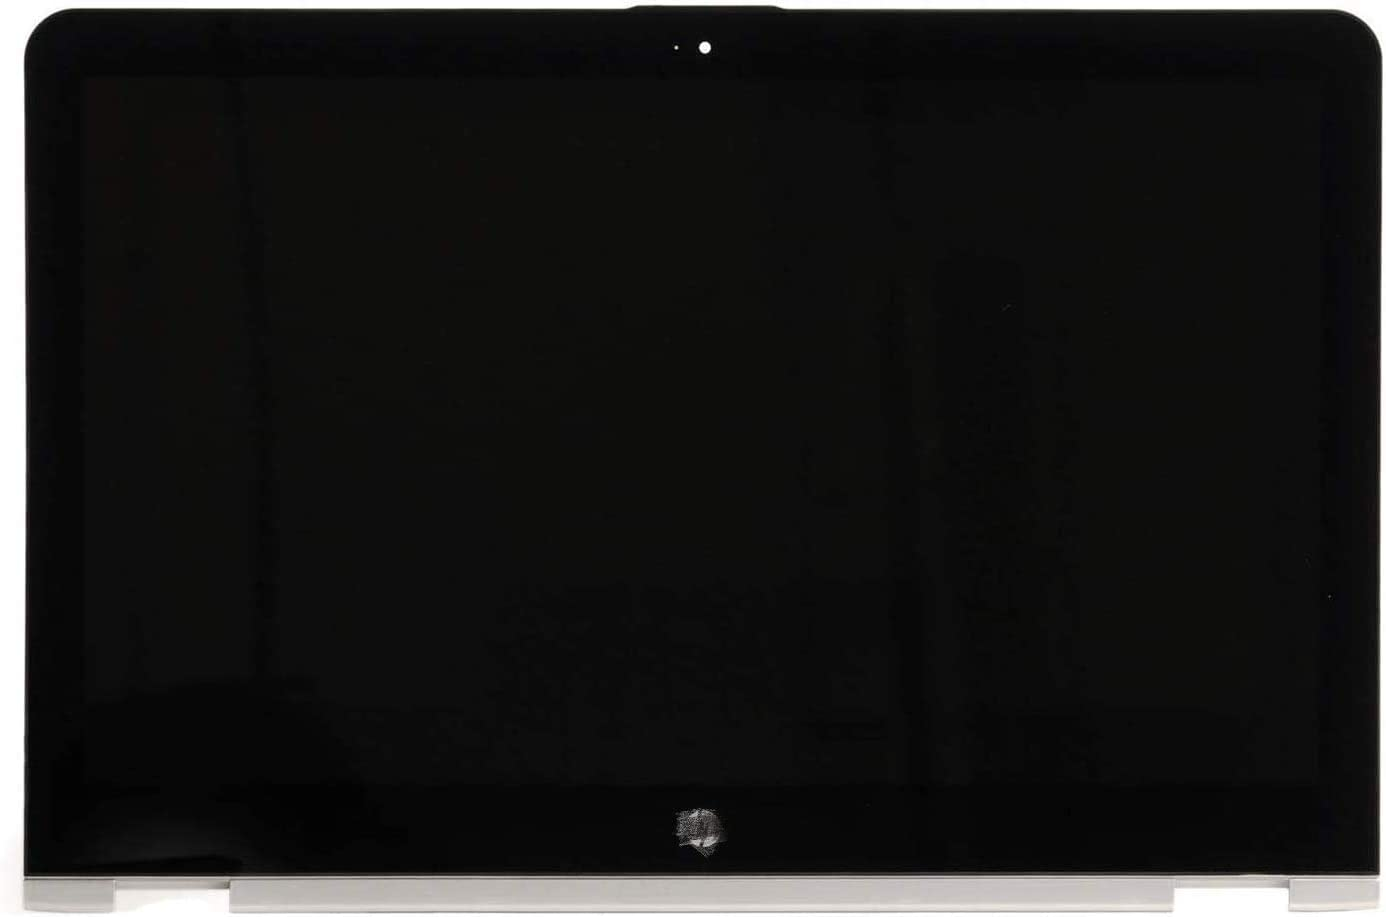 New Replacement for HP Envy X360 15-AQ015NR M6-AQ 15-AQ173CL M6-AQ005DX LCD LED Screen Display with Touch Digitizer and Bezel Frame Assembly 15.6 inch 1920x1080